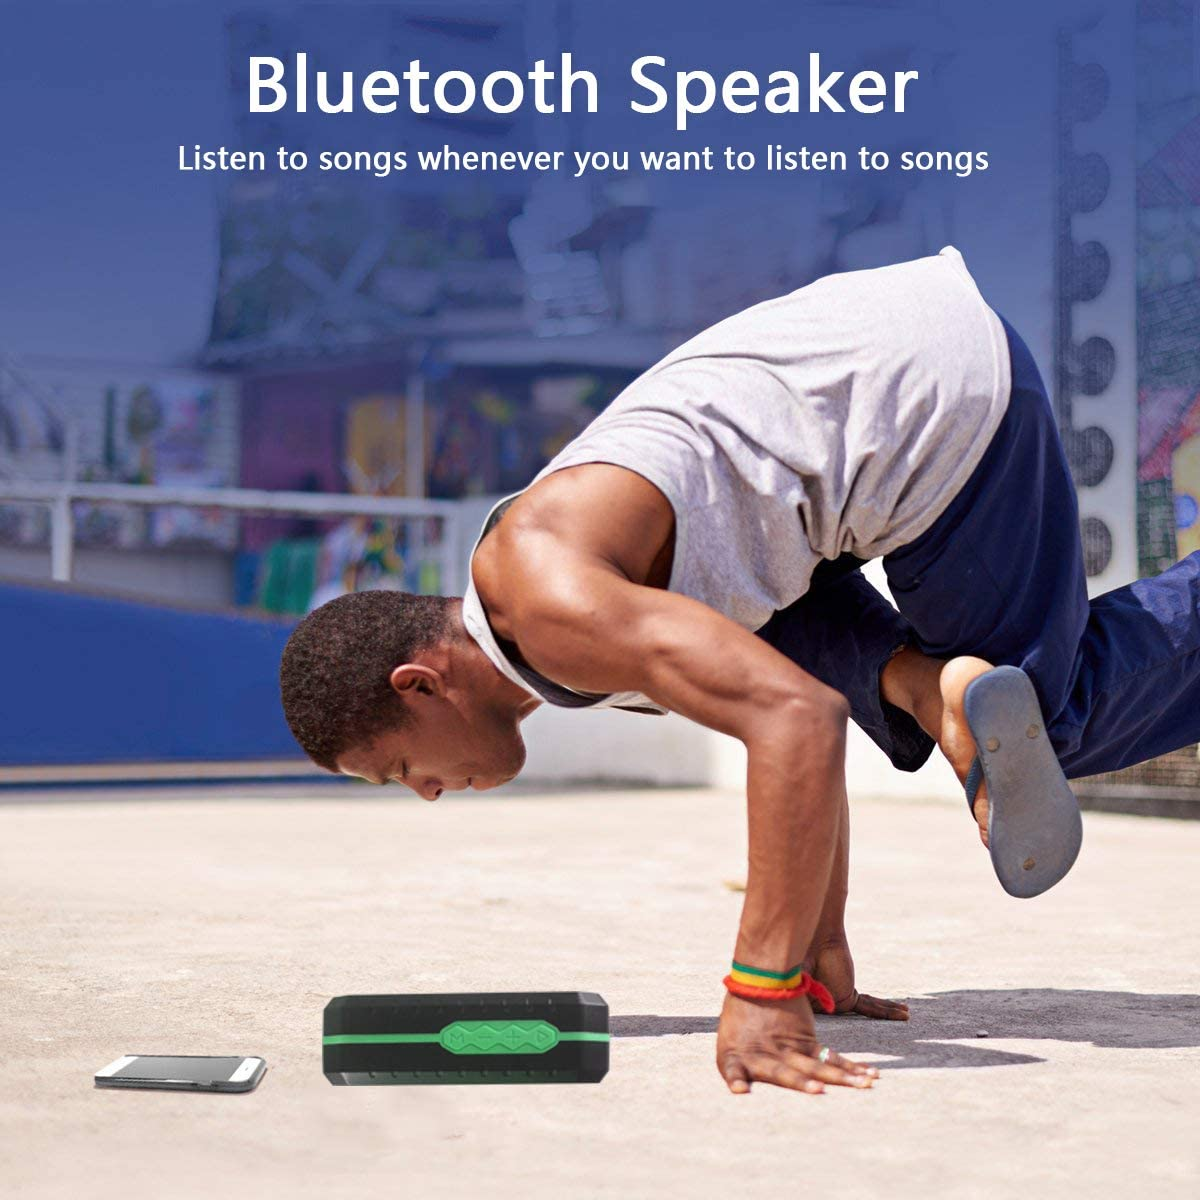 Wireless Bluetooth Speakers, IP65 Certification,Portable Waterproof Outdoor Speakers Bluetooth 5.0 for Softphone and Mobile Phone,Louder Volume, Crystal Clear Stereo Sound, Rich Bass(Green)